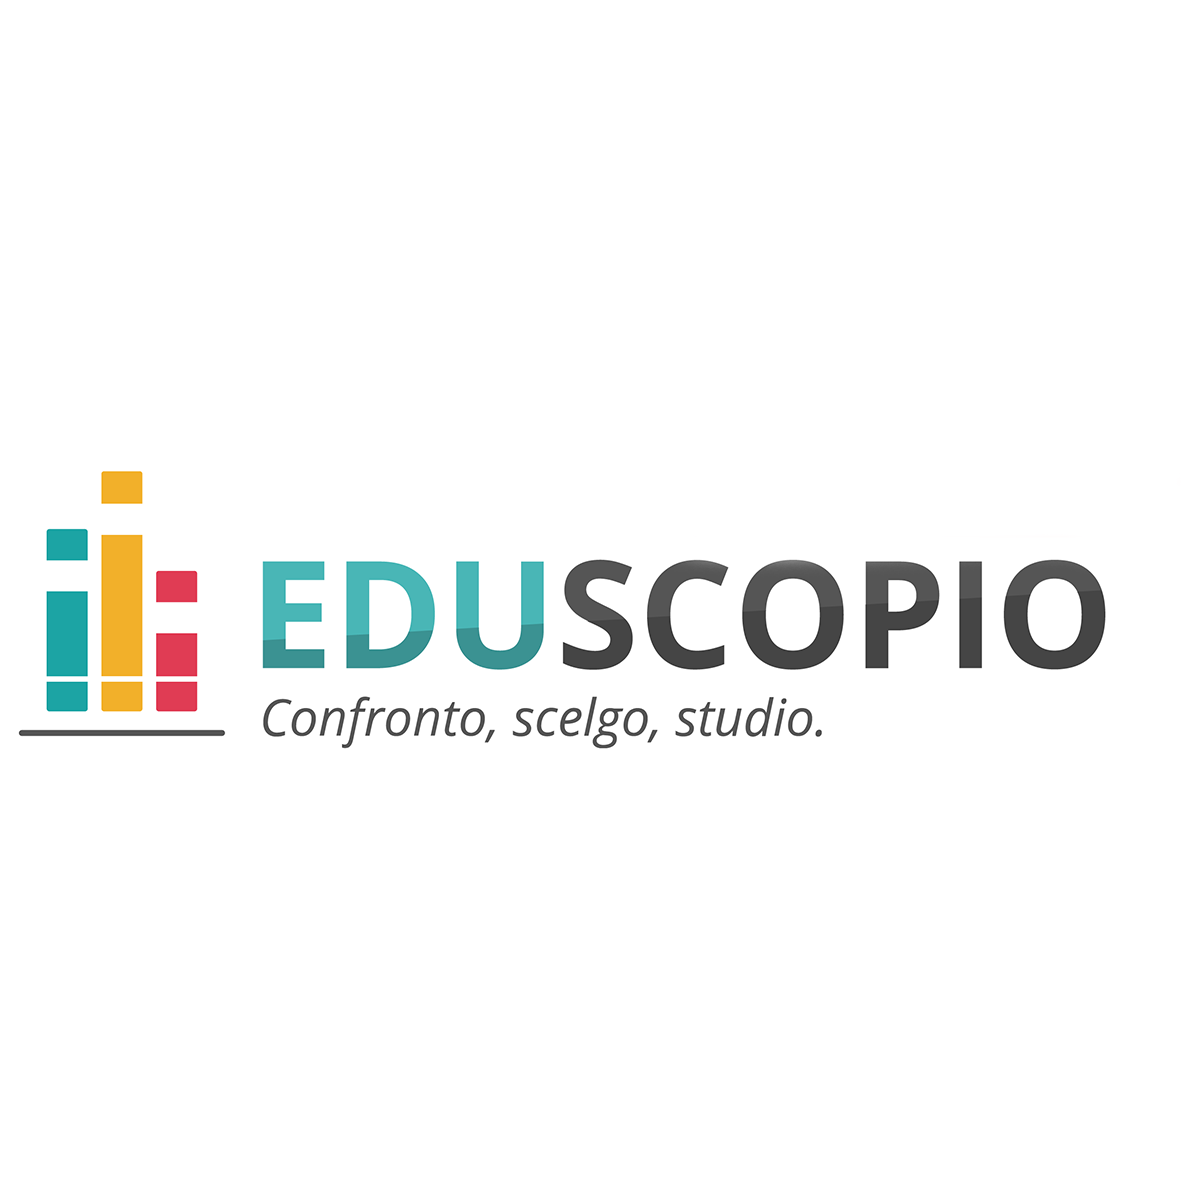 CLASSIFICA EDUSCOPIO: IL SANNAZARO SI CONFERMA ...